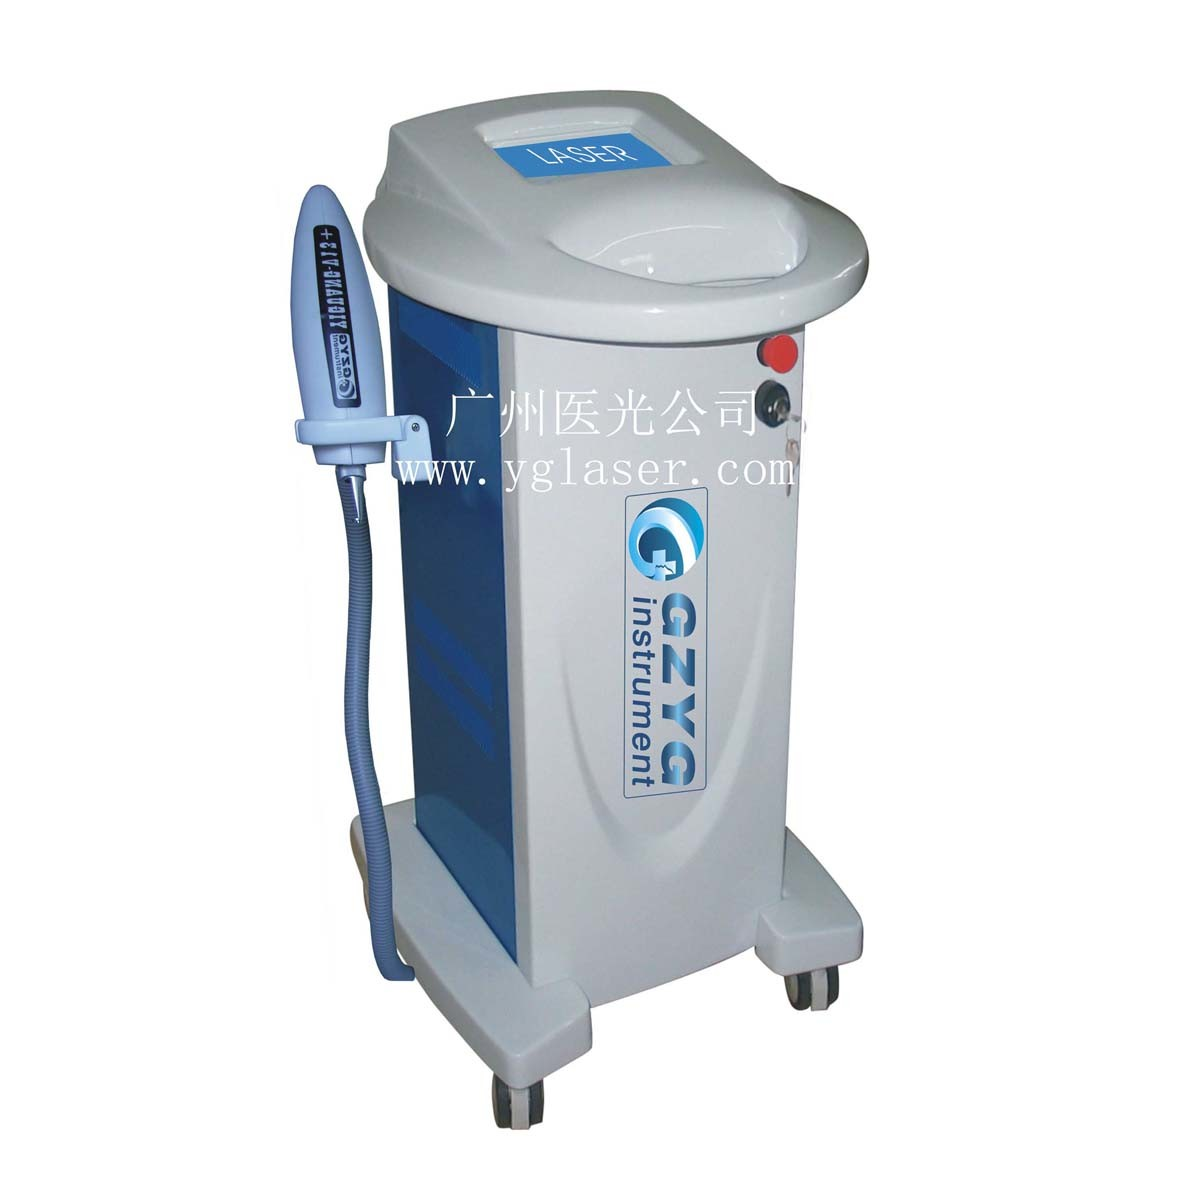 China Laser Eyebrow and Tattoo Removal Equipment - China Laser ...